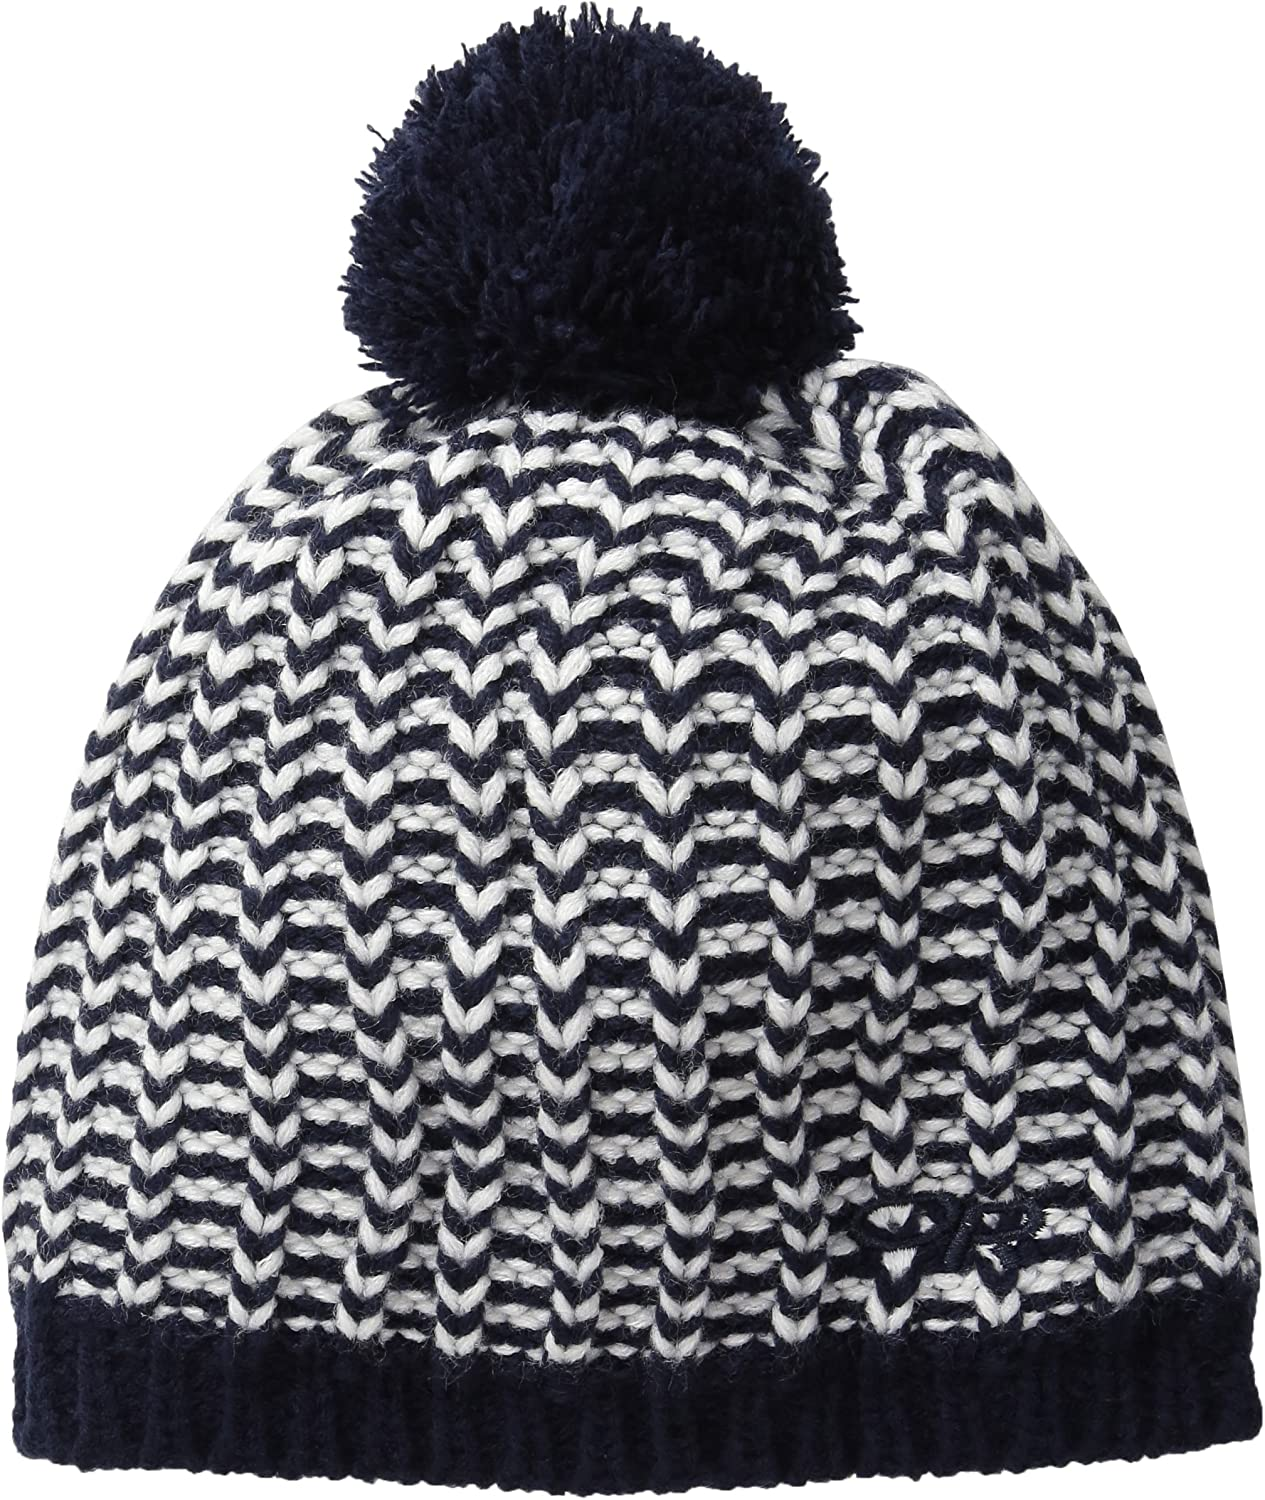 Max 82% OFF Outdoor excellence Research Lil' Beanie Ripper